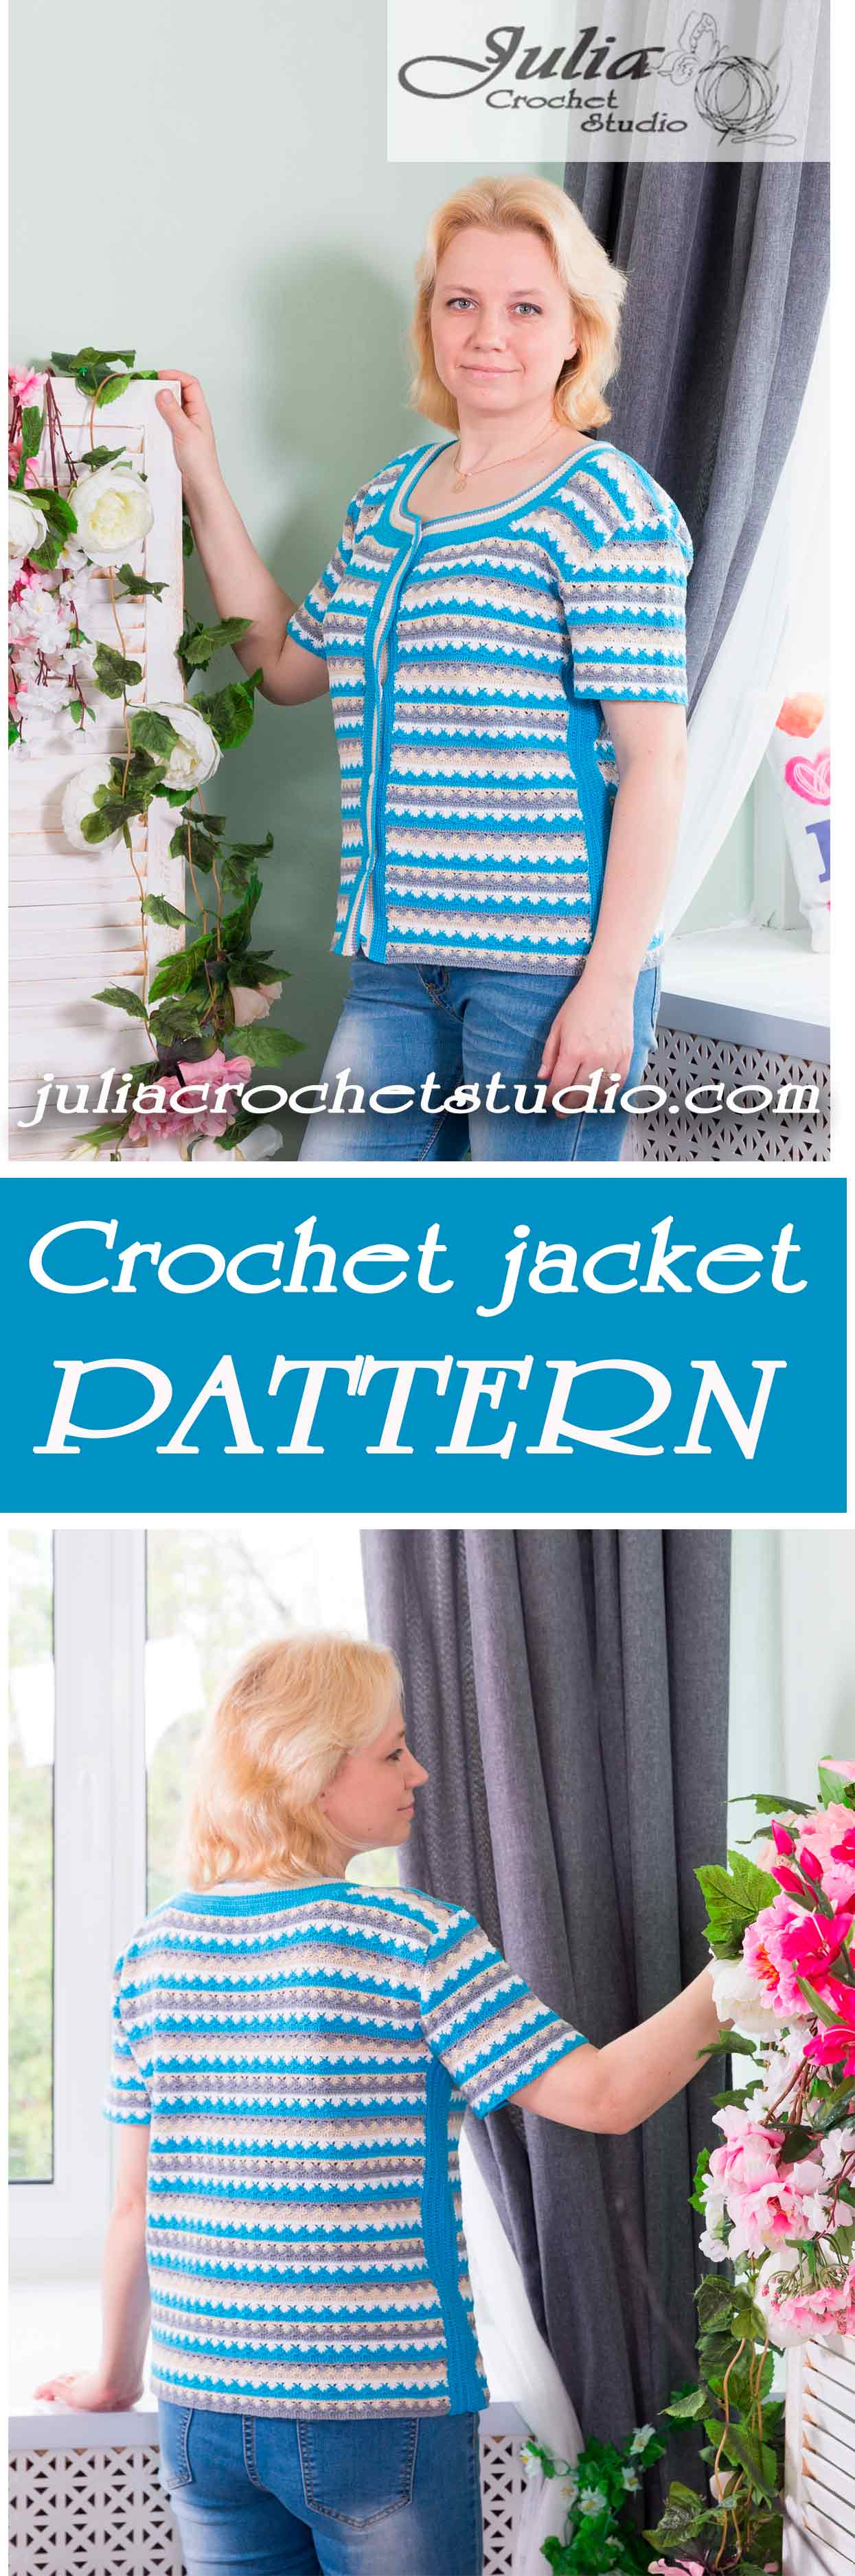 Multicolored crochet jacket pattern